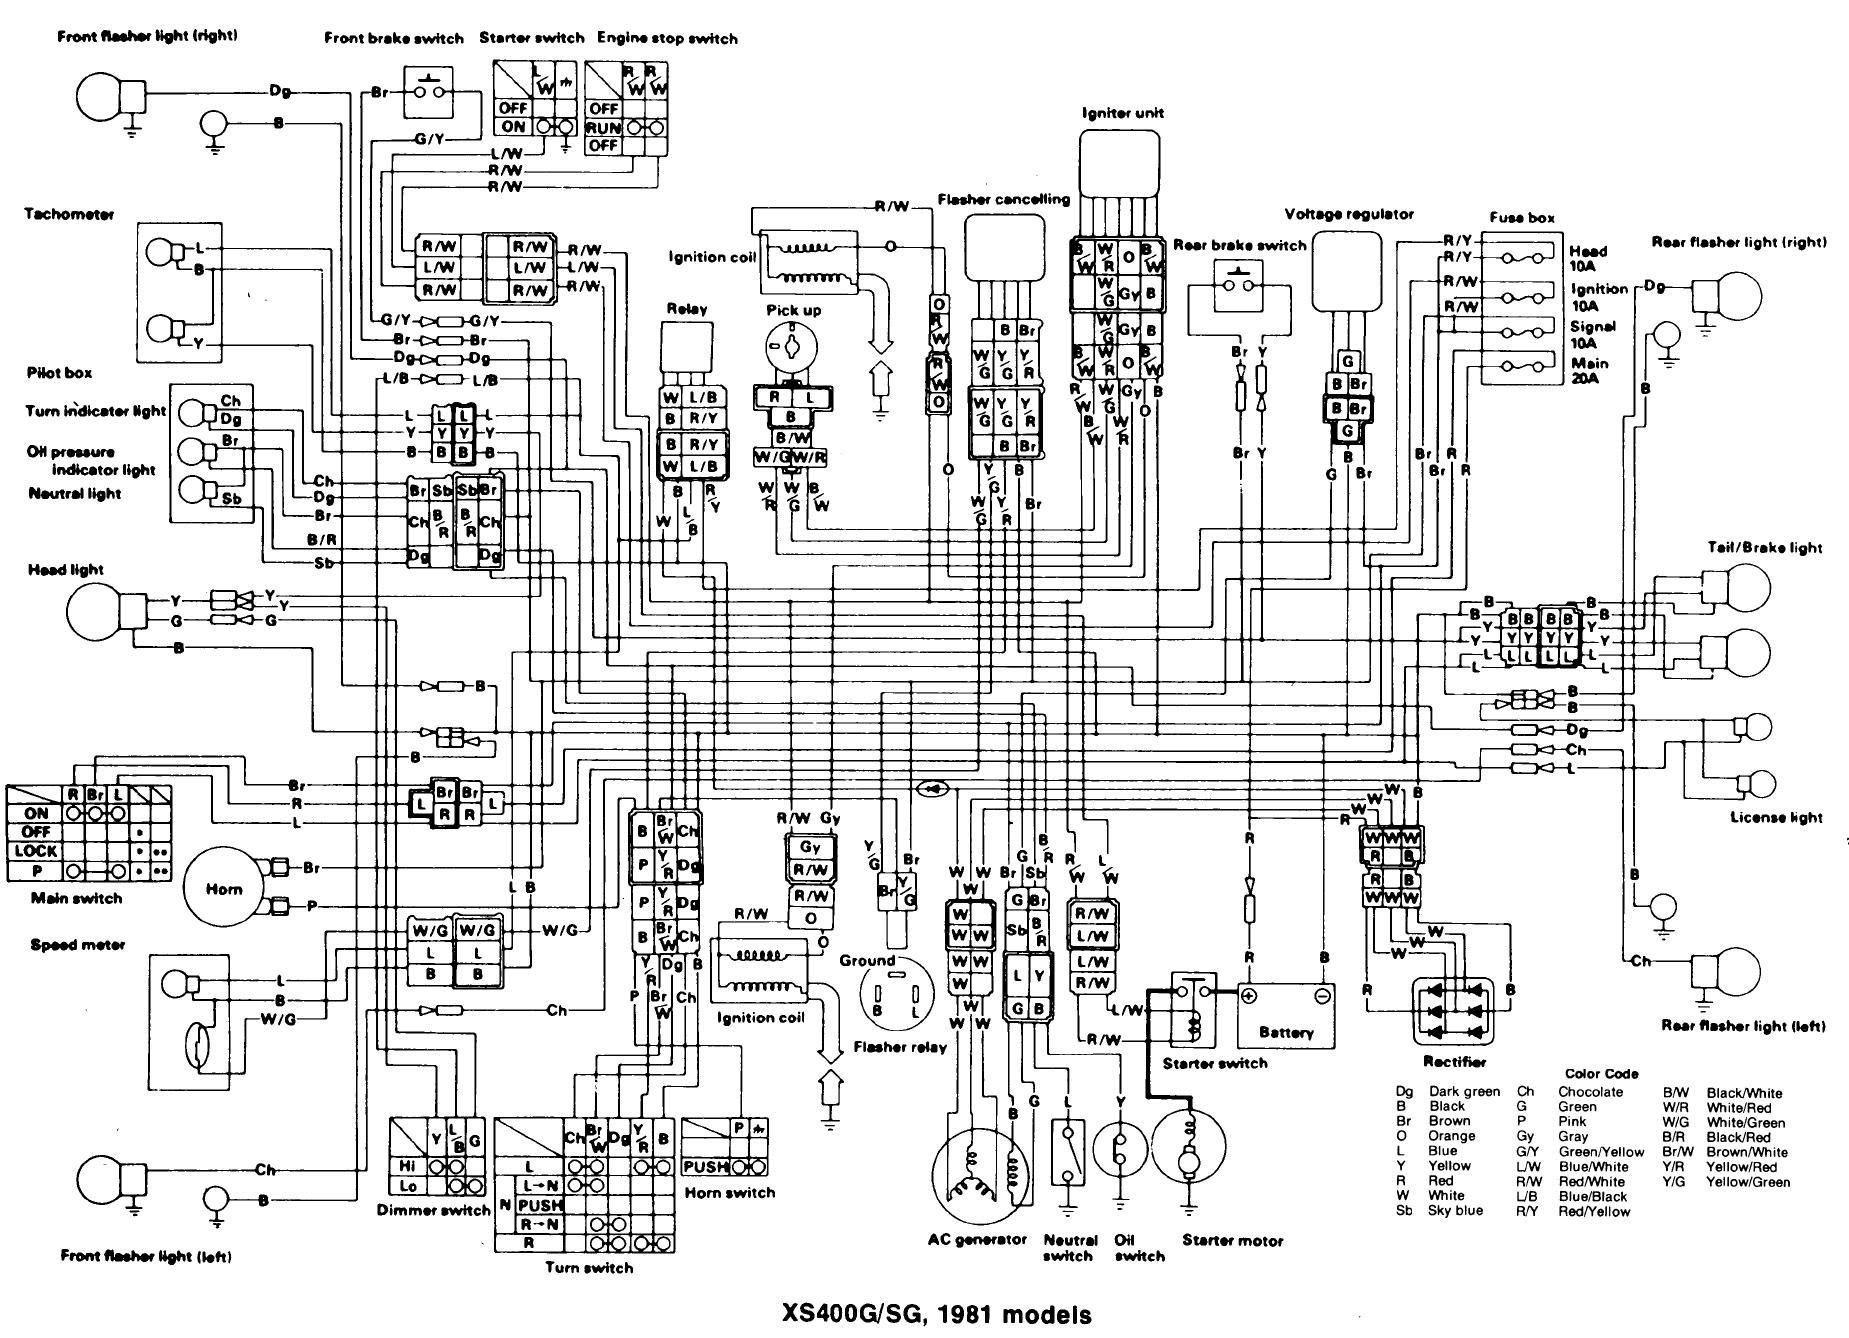 1979 Yamaha Xs400 Wiring Diagram Schematic Diagrams Honda Sl100 Xs 400 Trusted U2022 Mt250